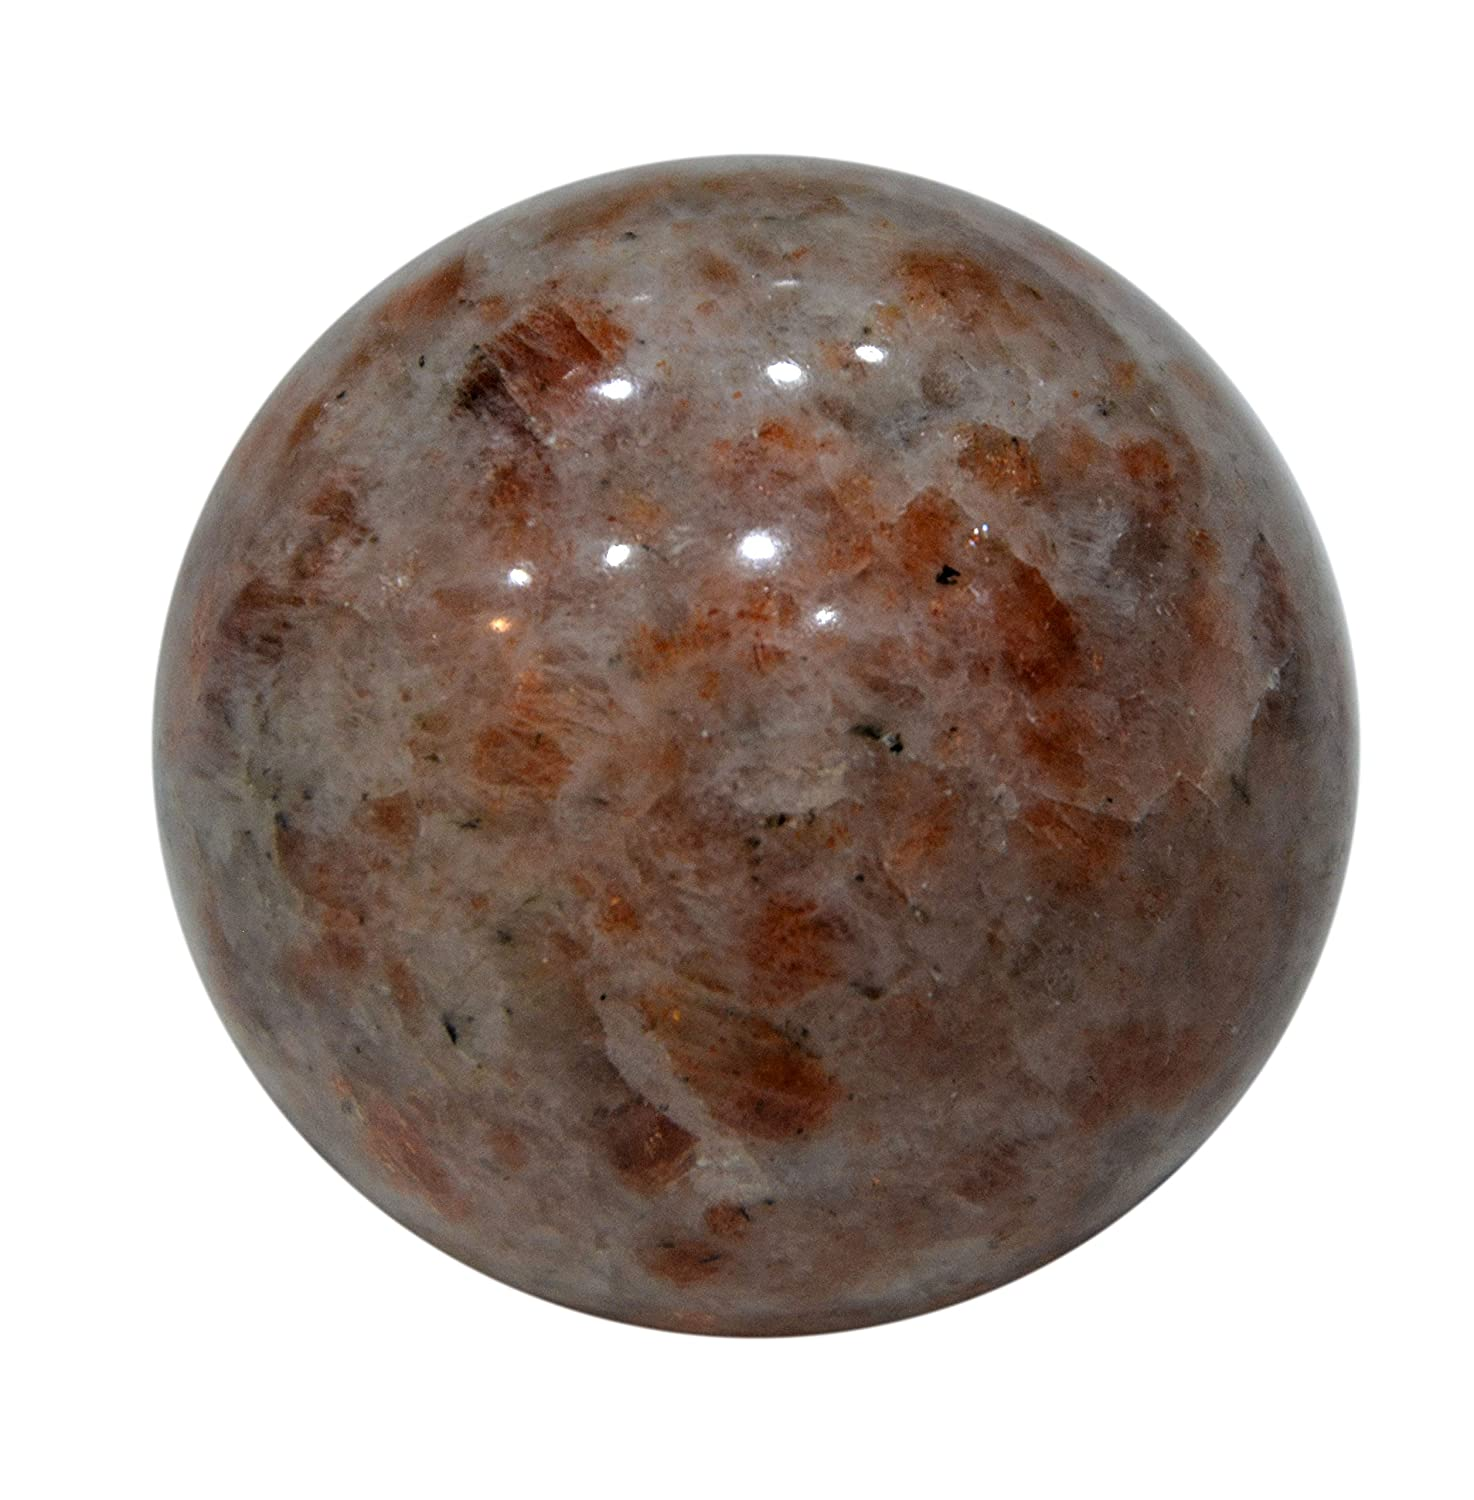 Aatm Healing Gemstone Sunstone Sphere Ball of Love & Protection Aatm Collection GAPC-215